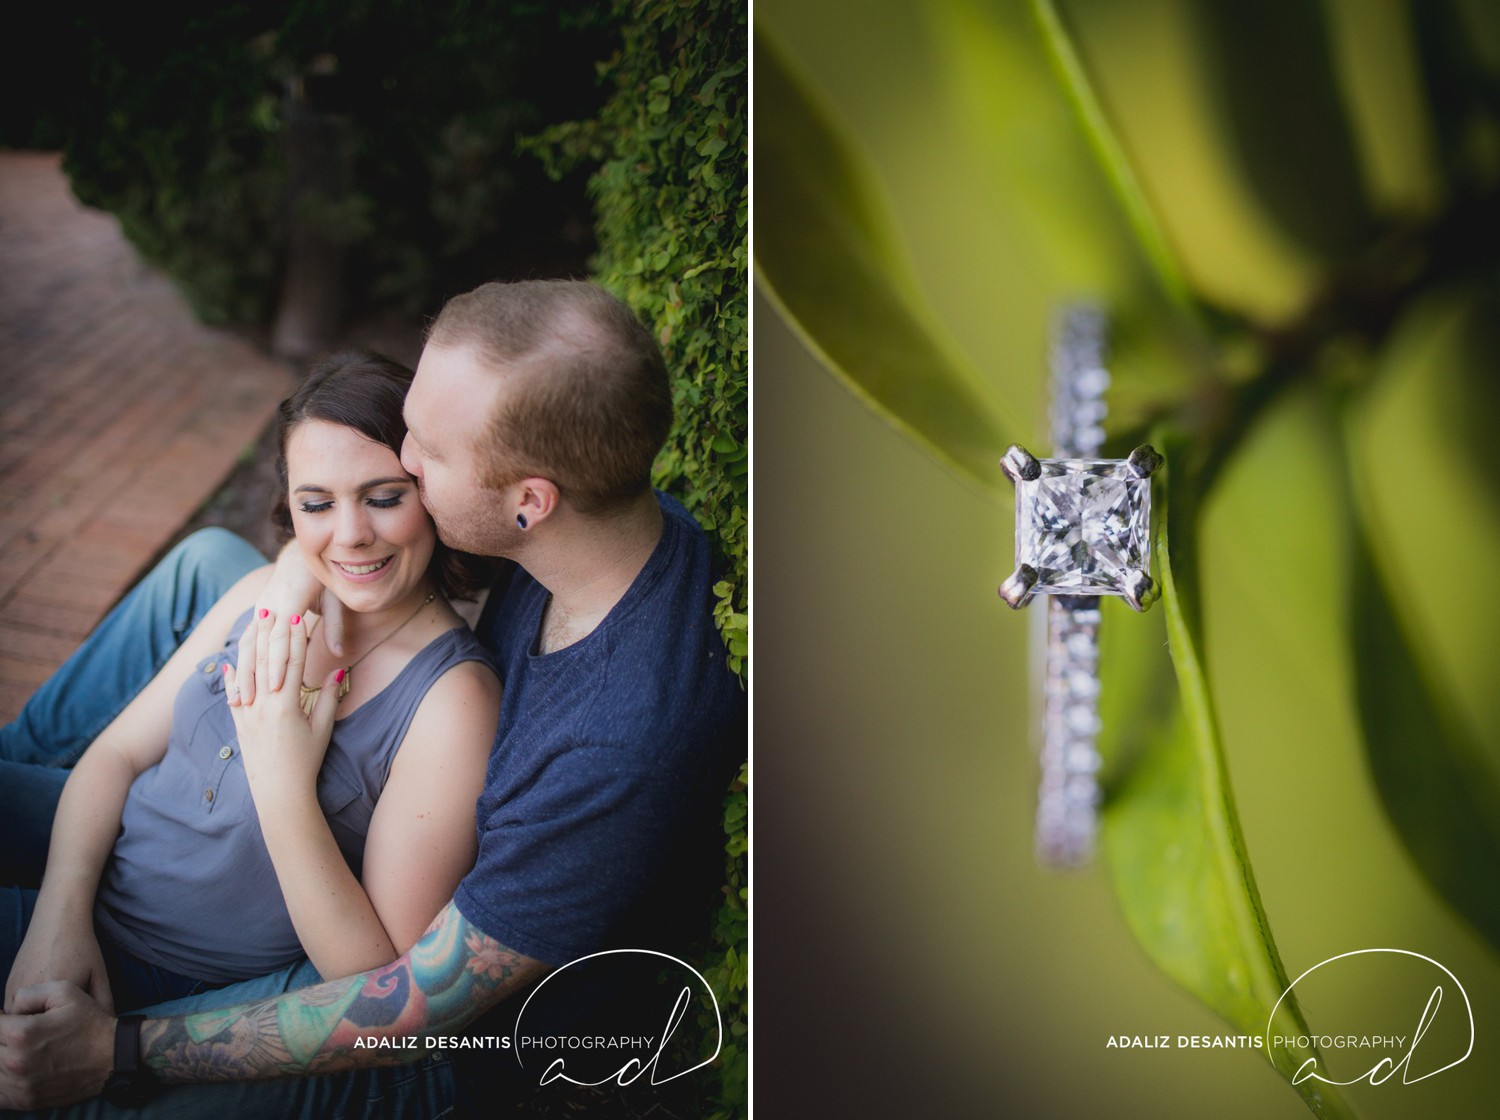 parkland golf and country club engagement session fort lauderdale south flrida 5.jpg